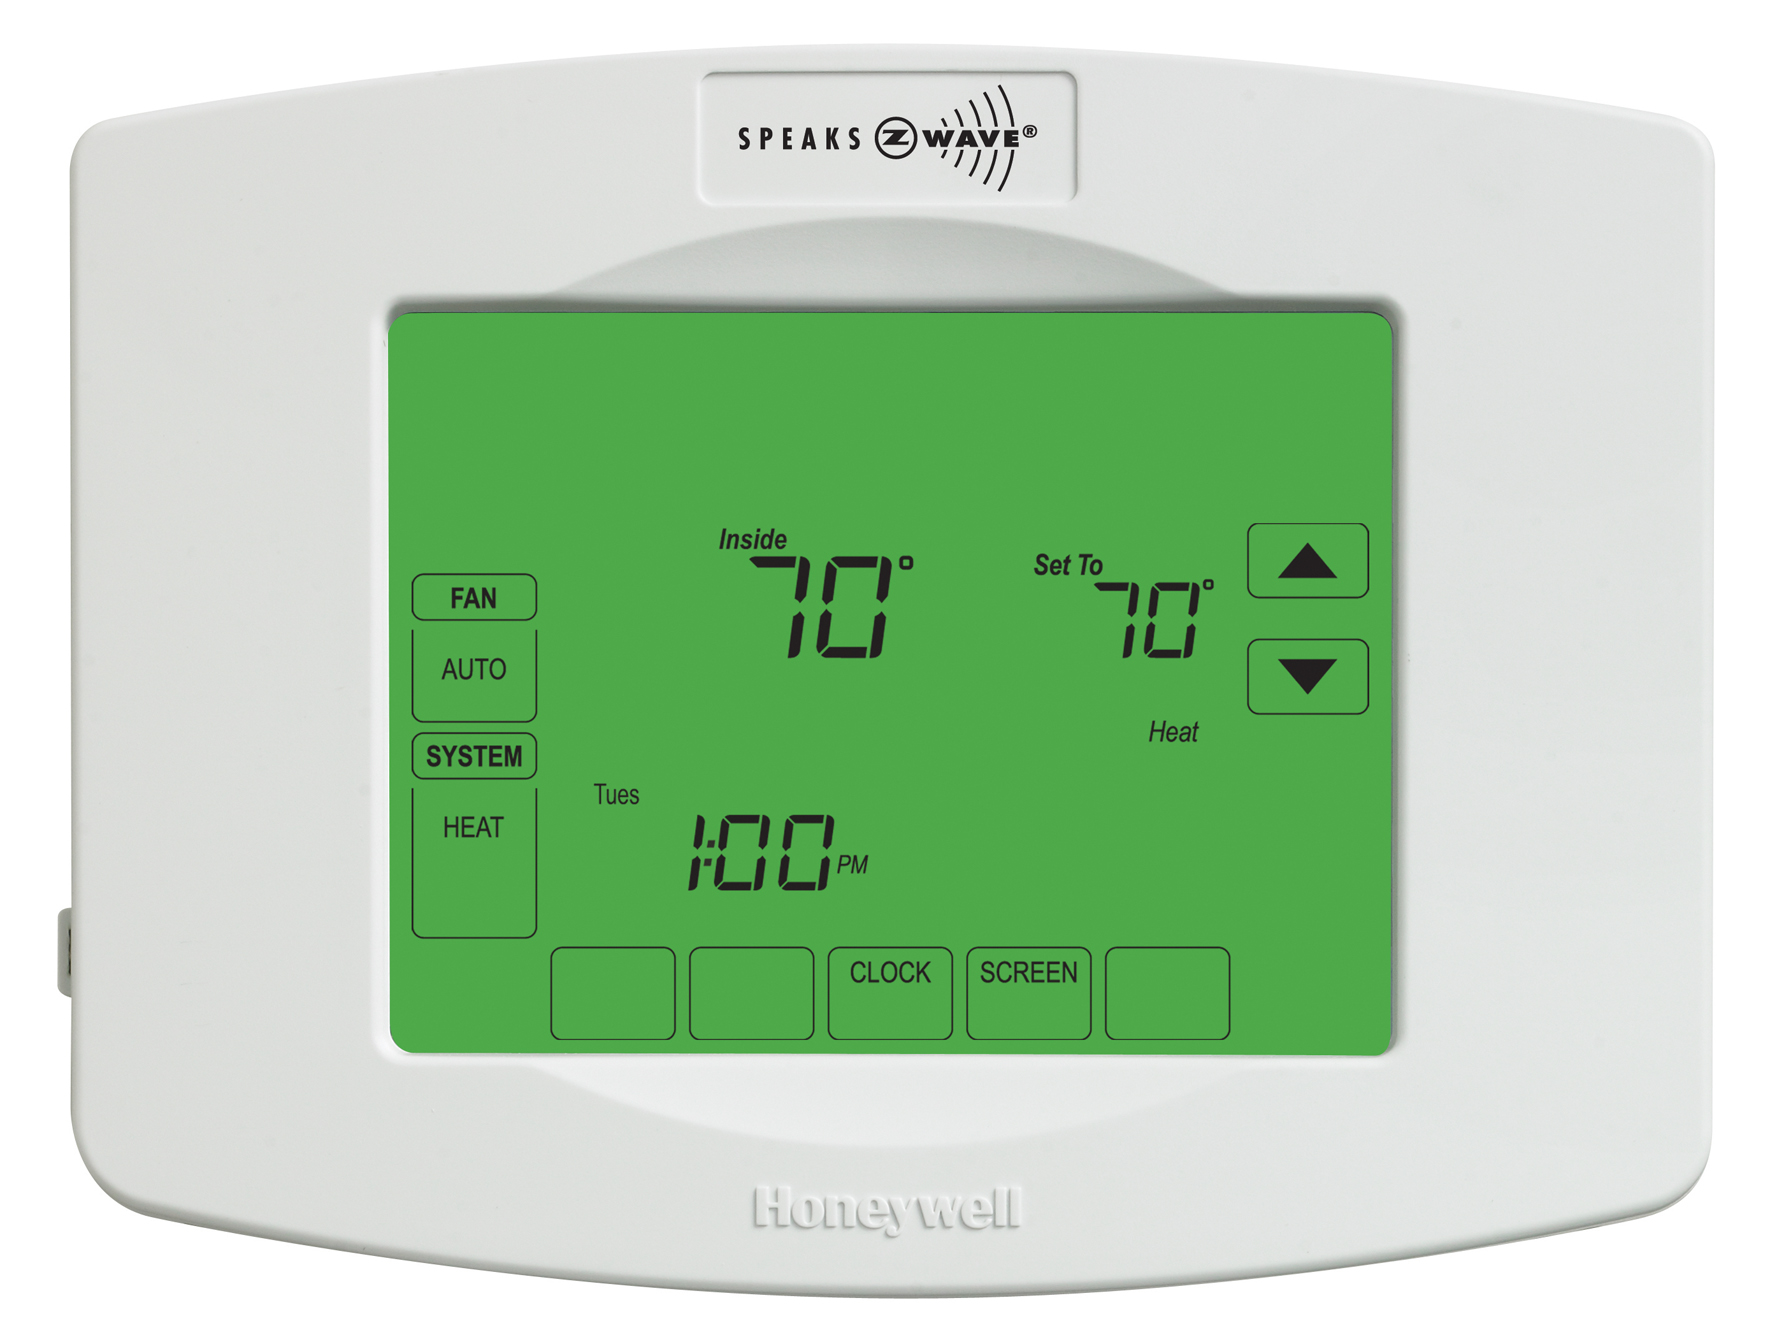 504120 Honeywell Rth7600d Wiring Blowing Hot Not Cooling as well Showthread furthermore T23318700 Wiring diagram honeywell rth2300 additionally 526409 Switching Trane Thermostat Honeywell Wifi Wire Help likewise Watch. on honeywell rth6350d wiring diagram